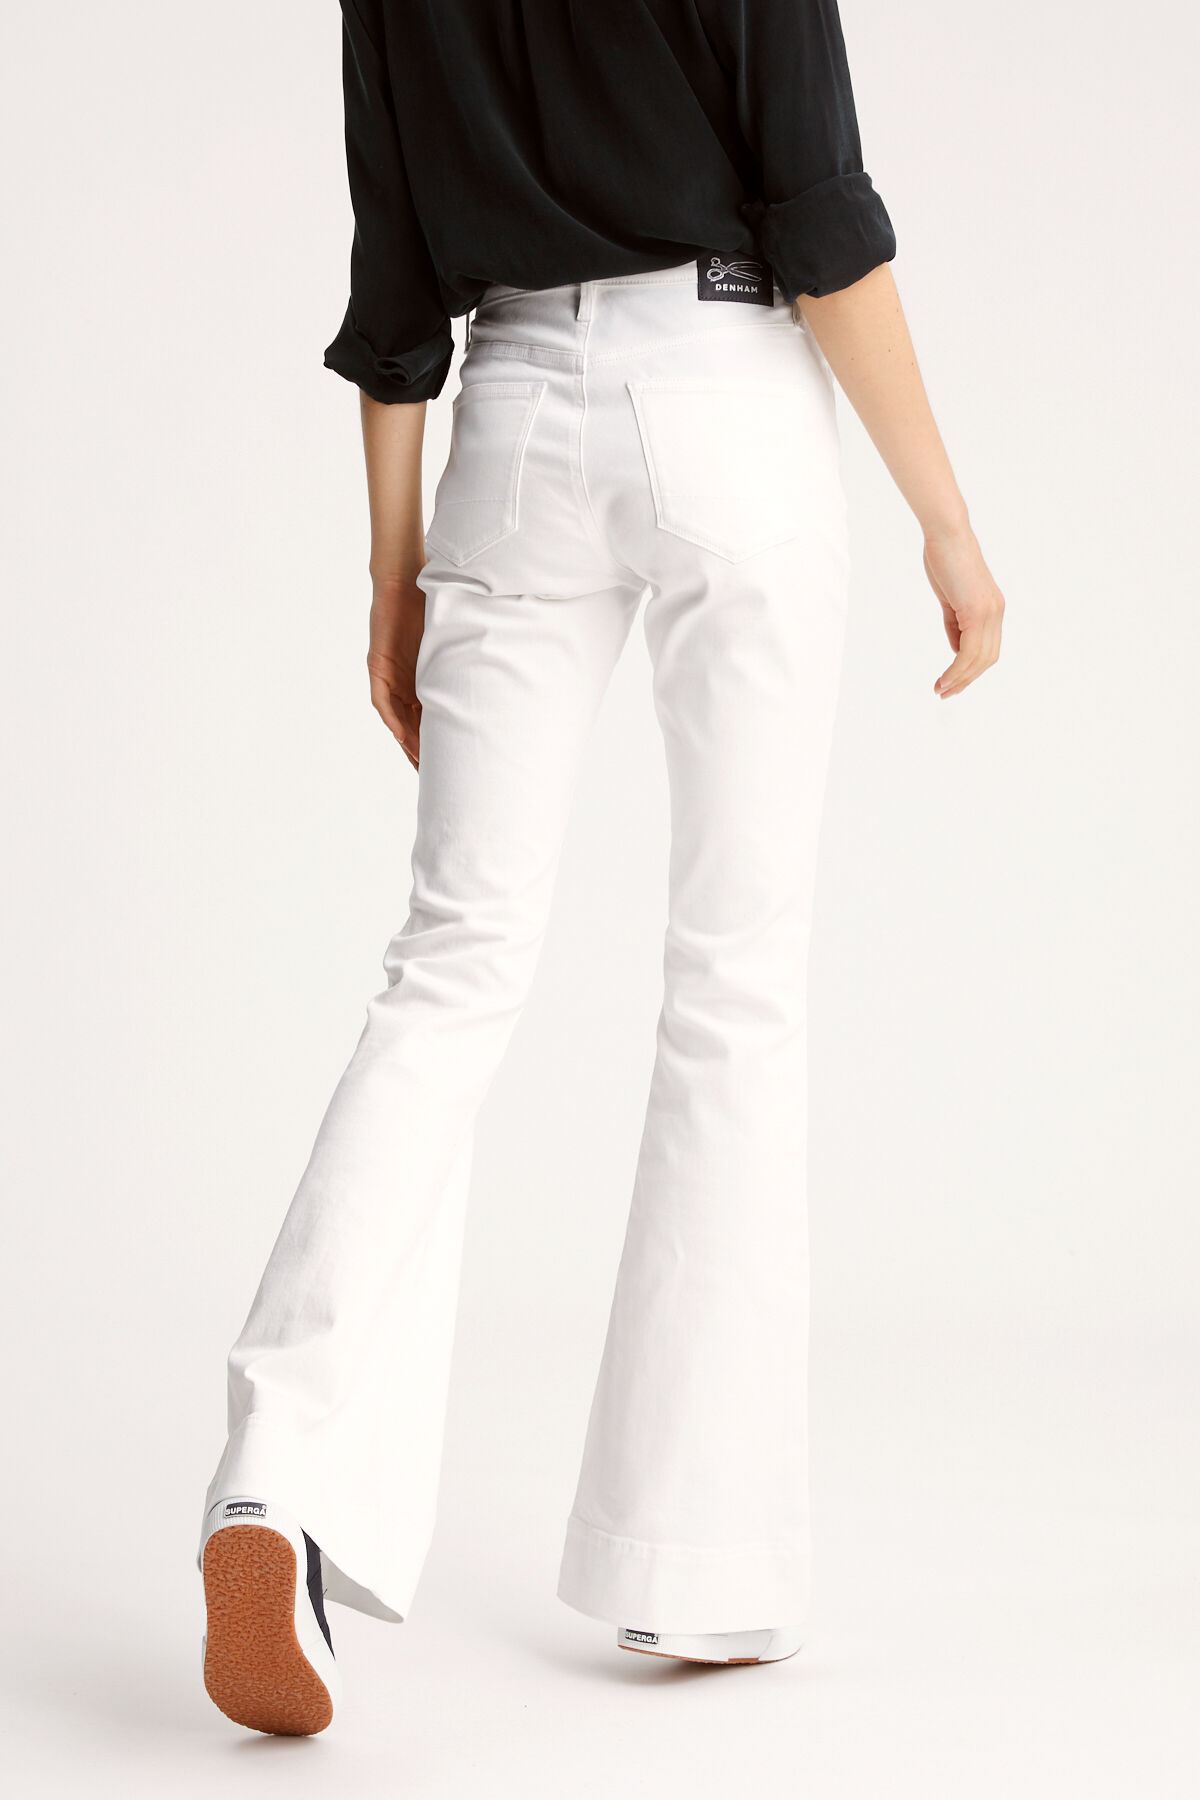 JANE Lightweight, White Denim - Flare Fit